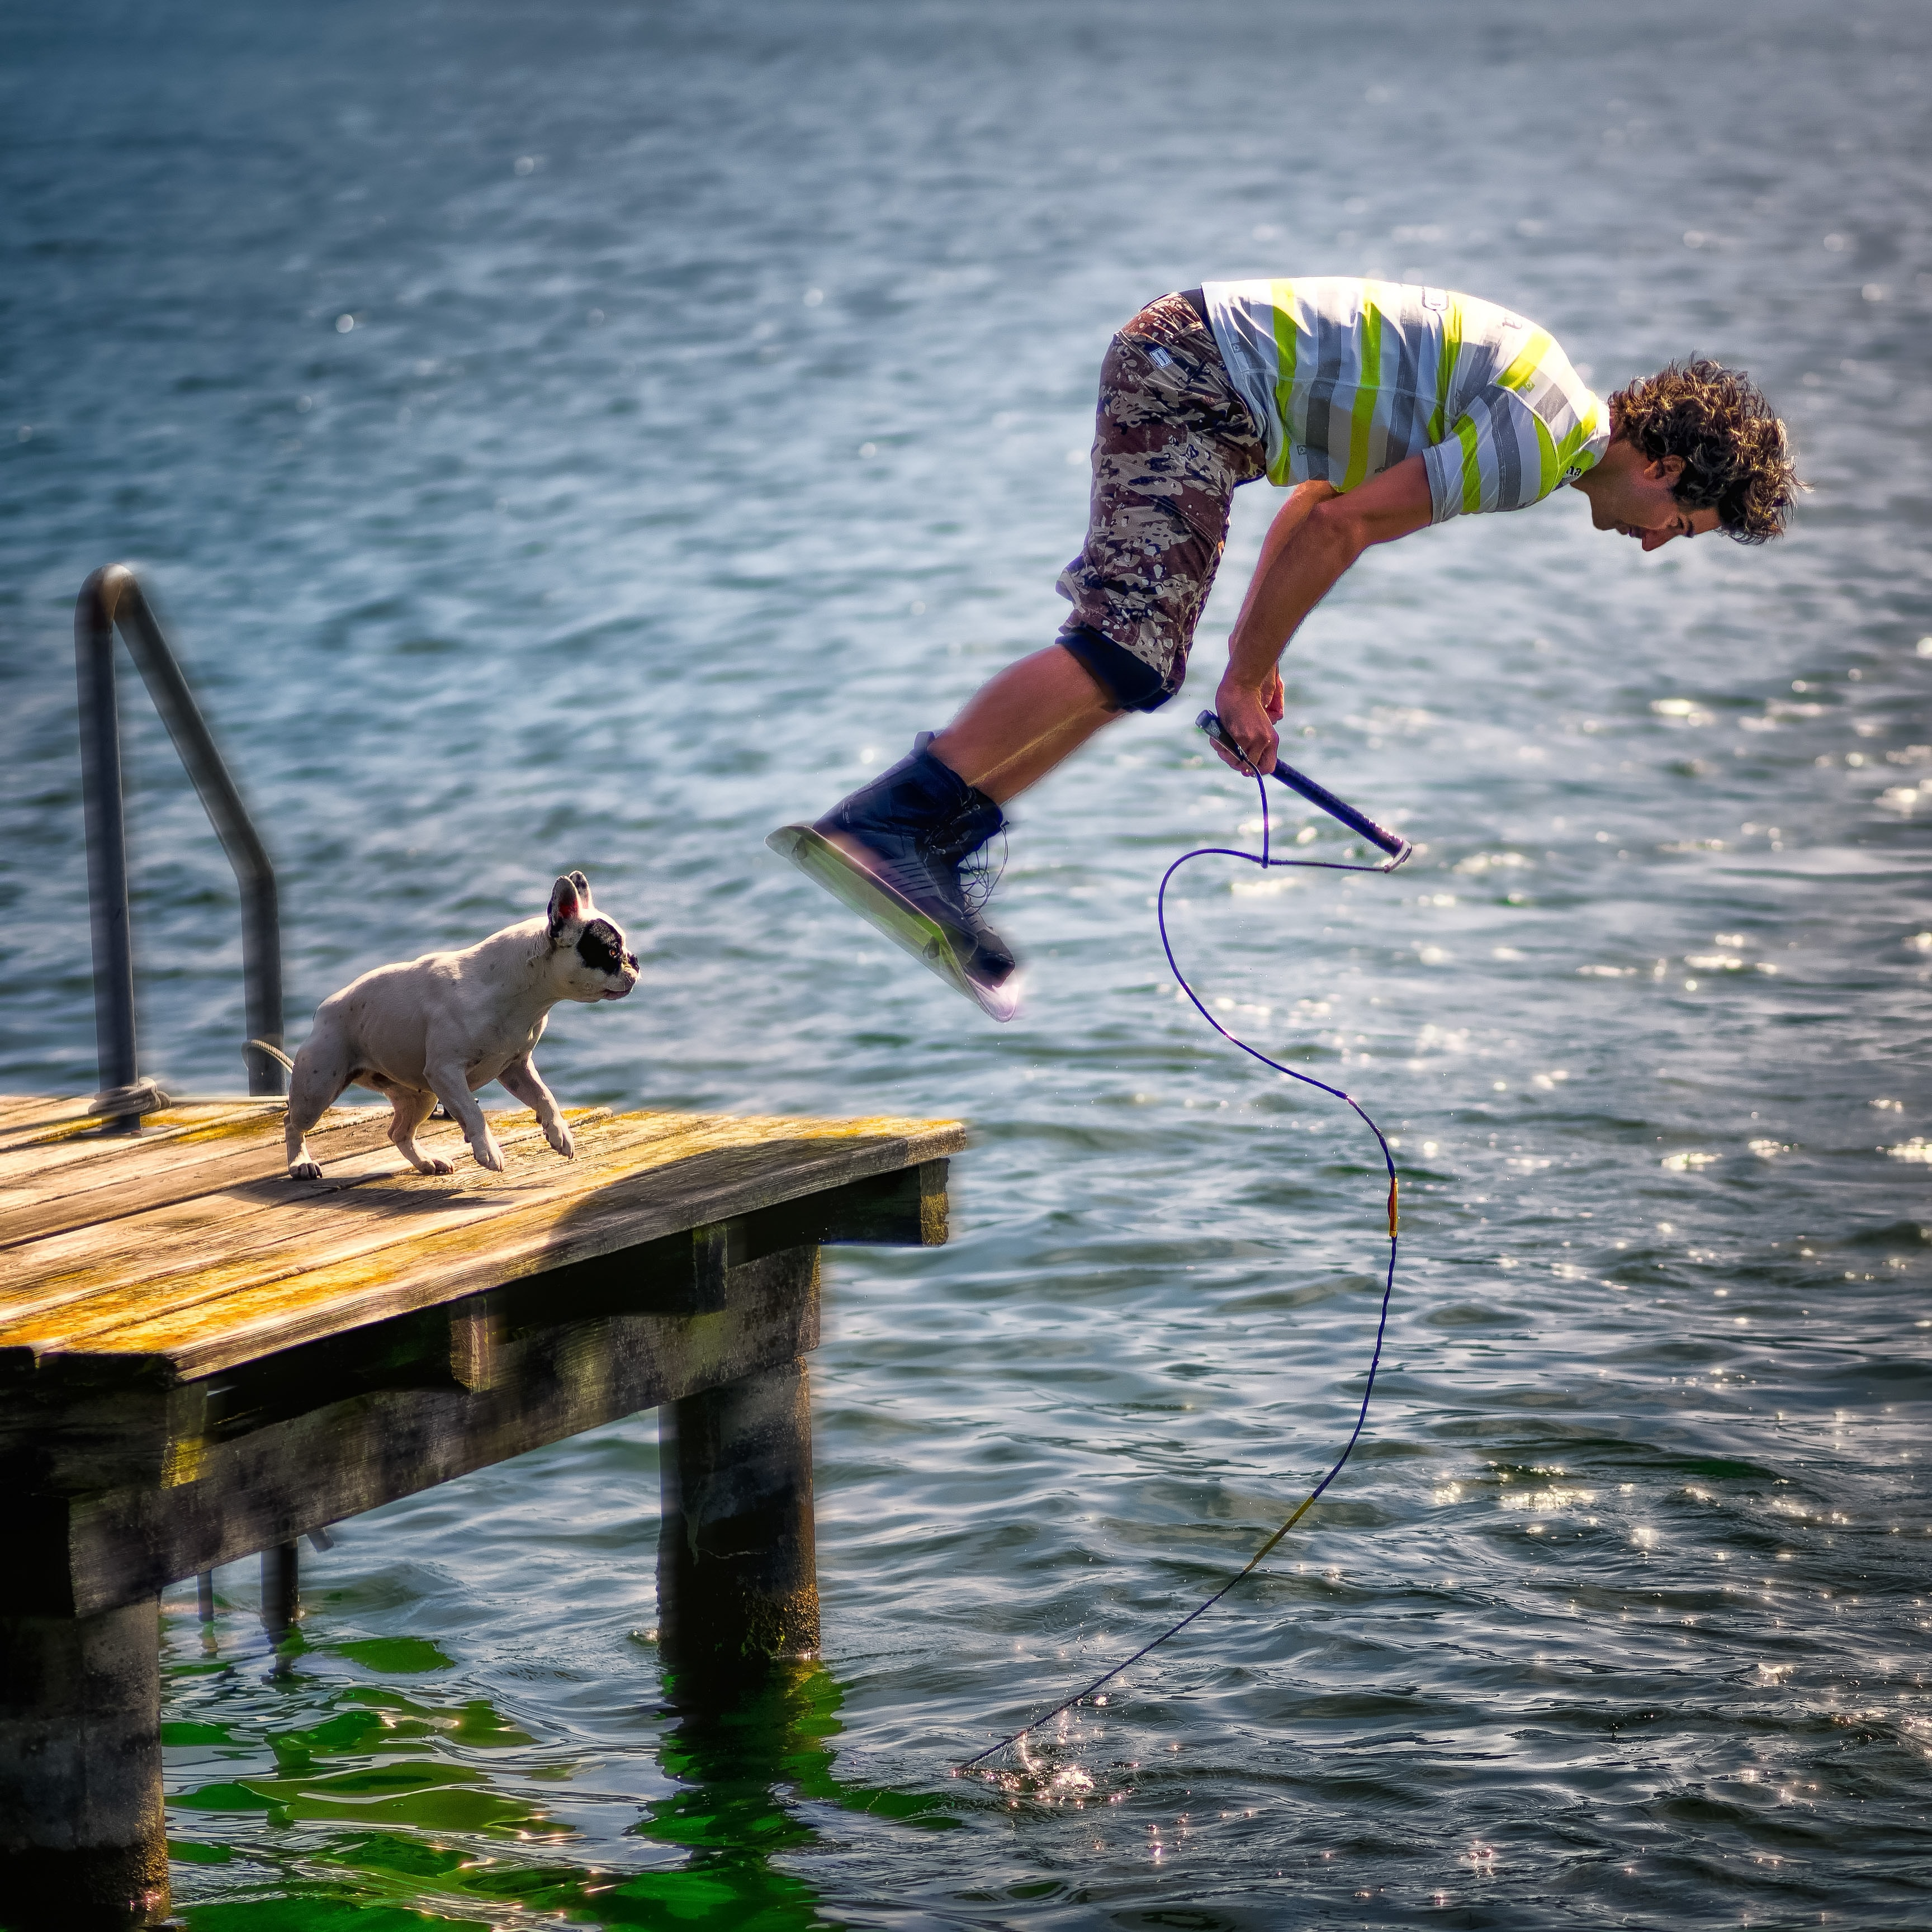 A man with curly hair diving into water, with his puppy on deck.